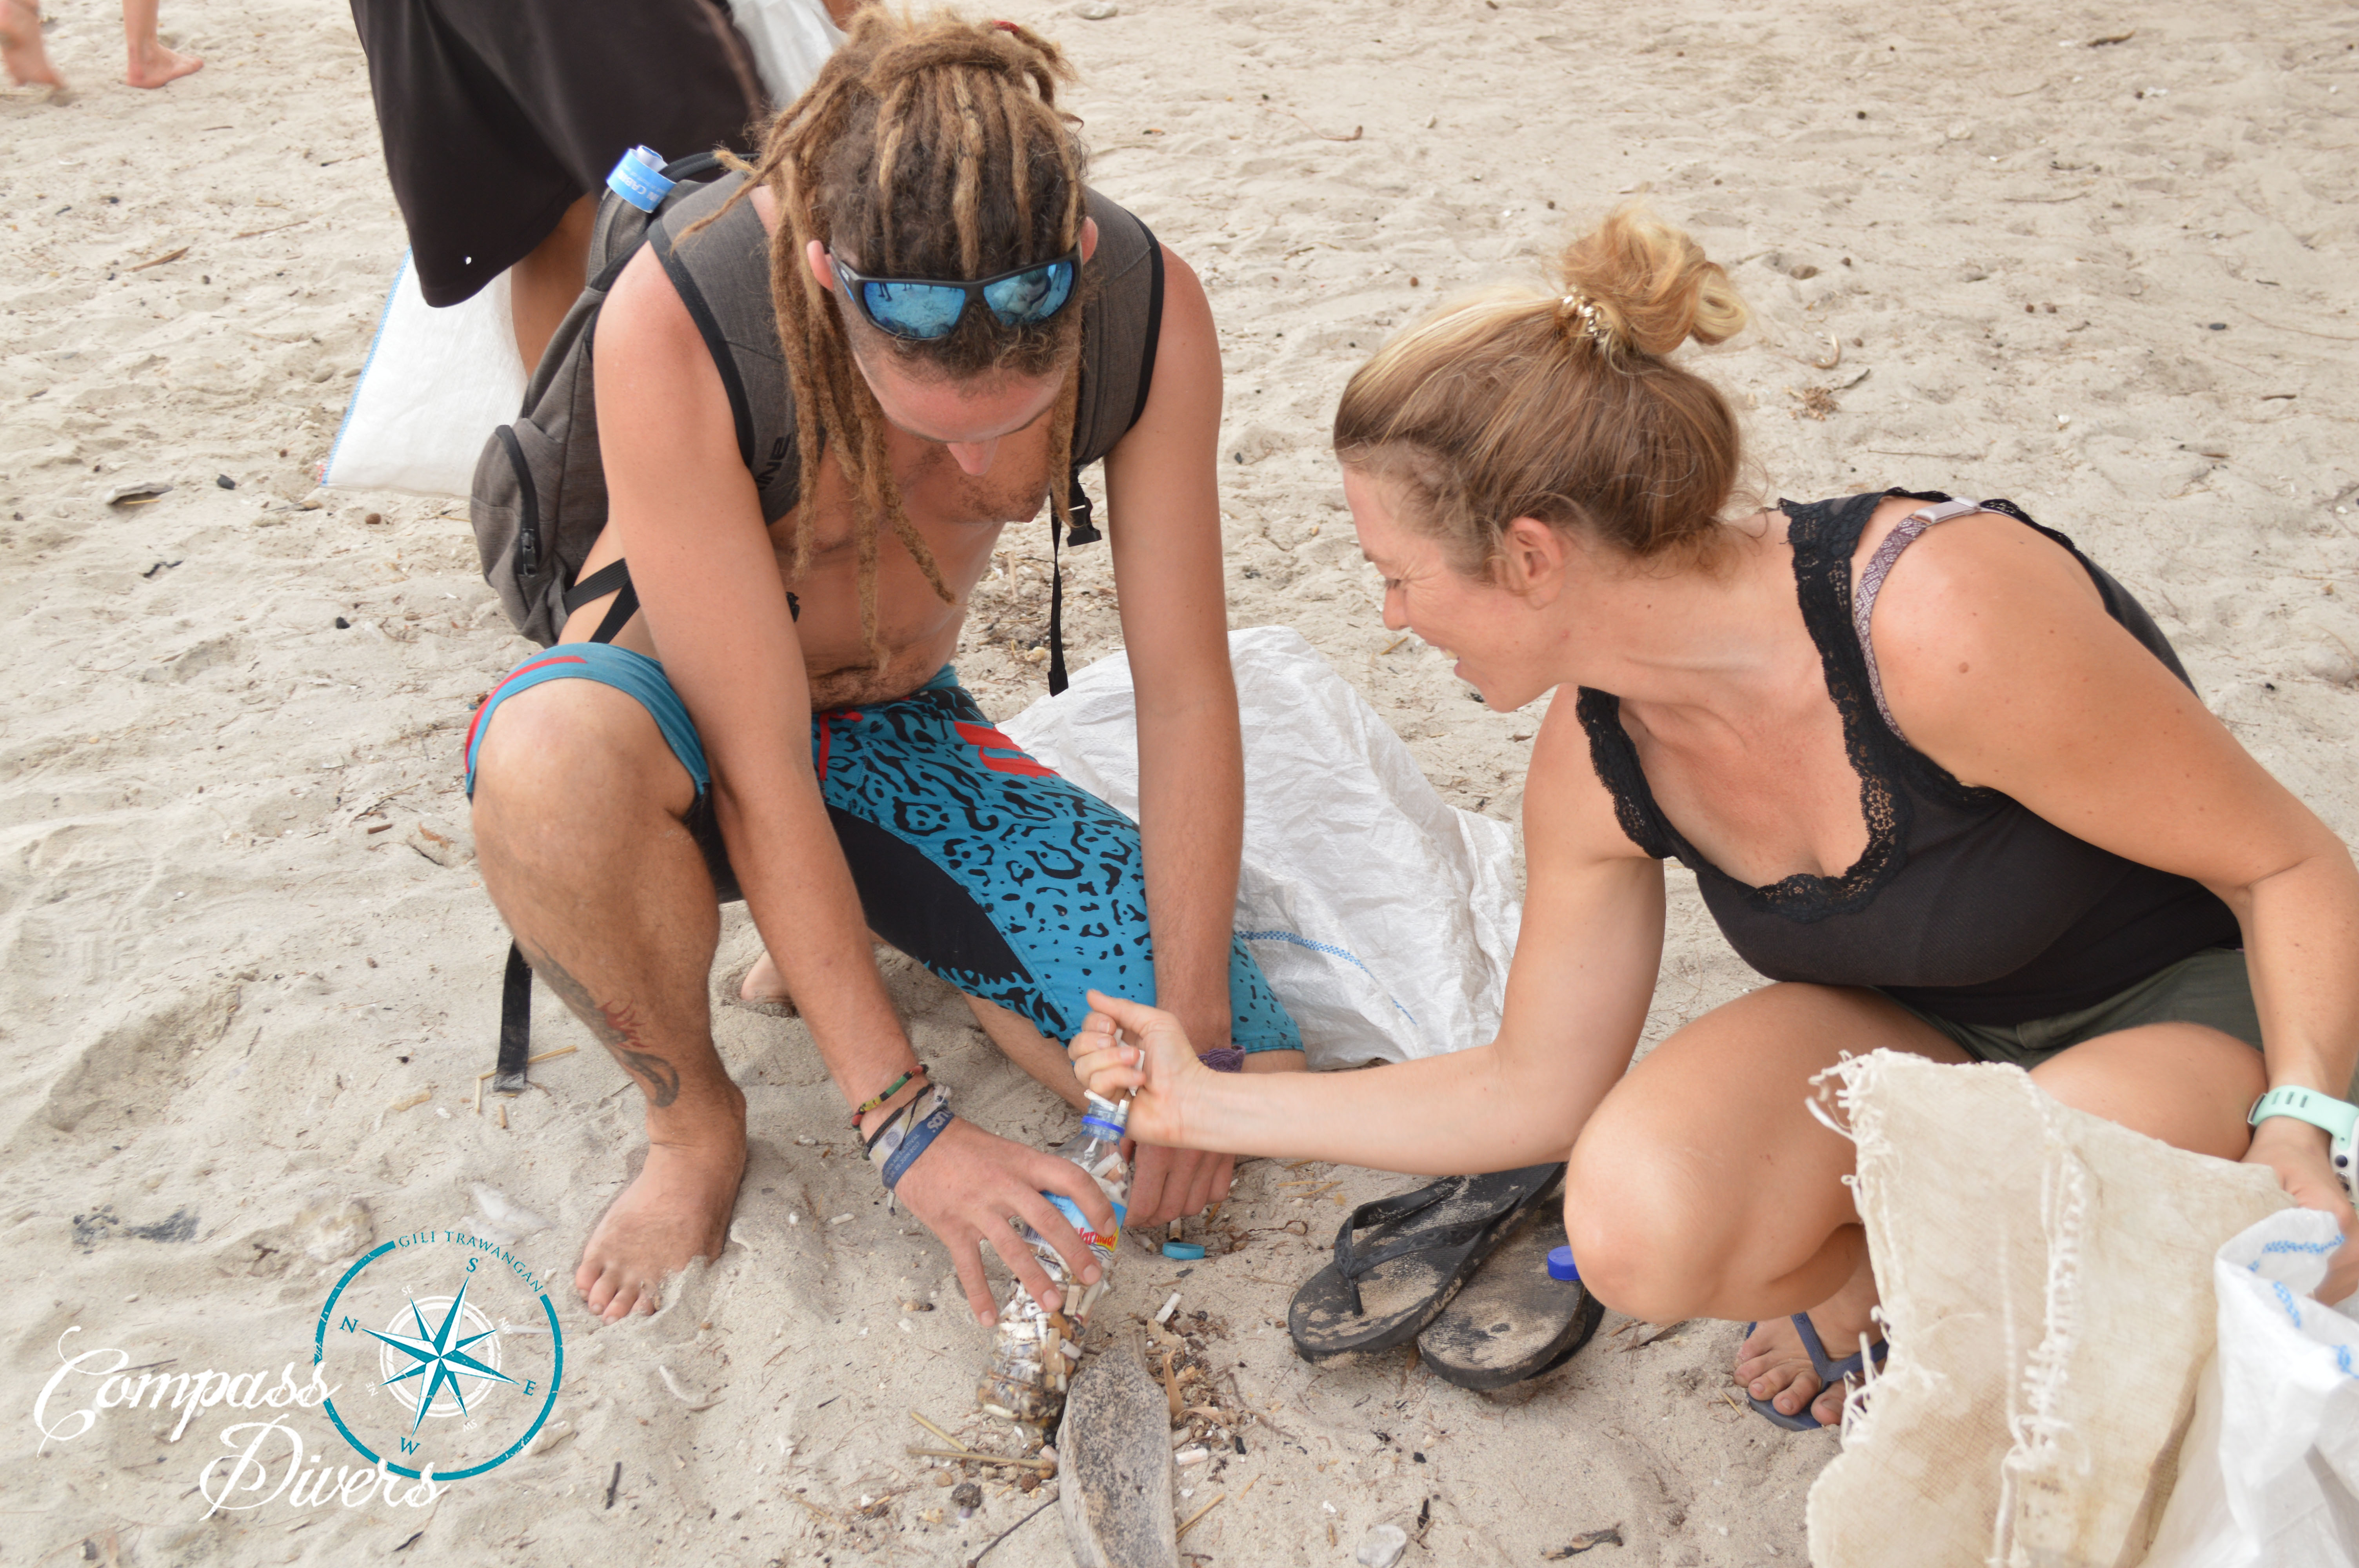 A couple help to clean cigarette butts up off the beach.